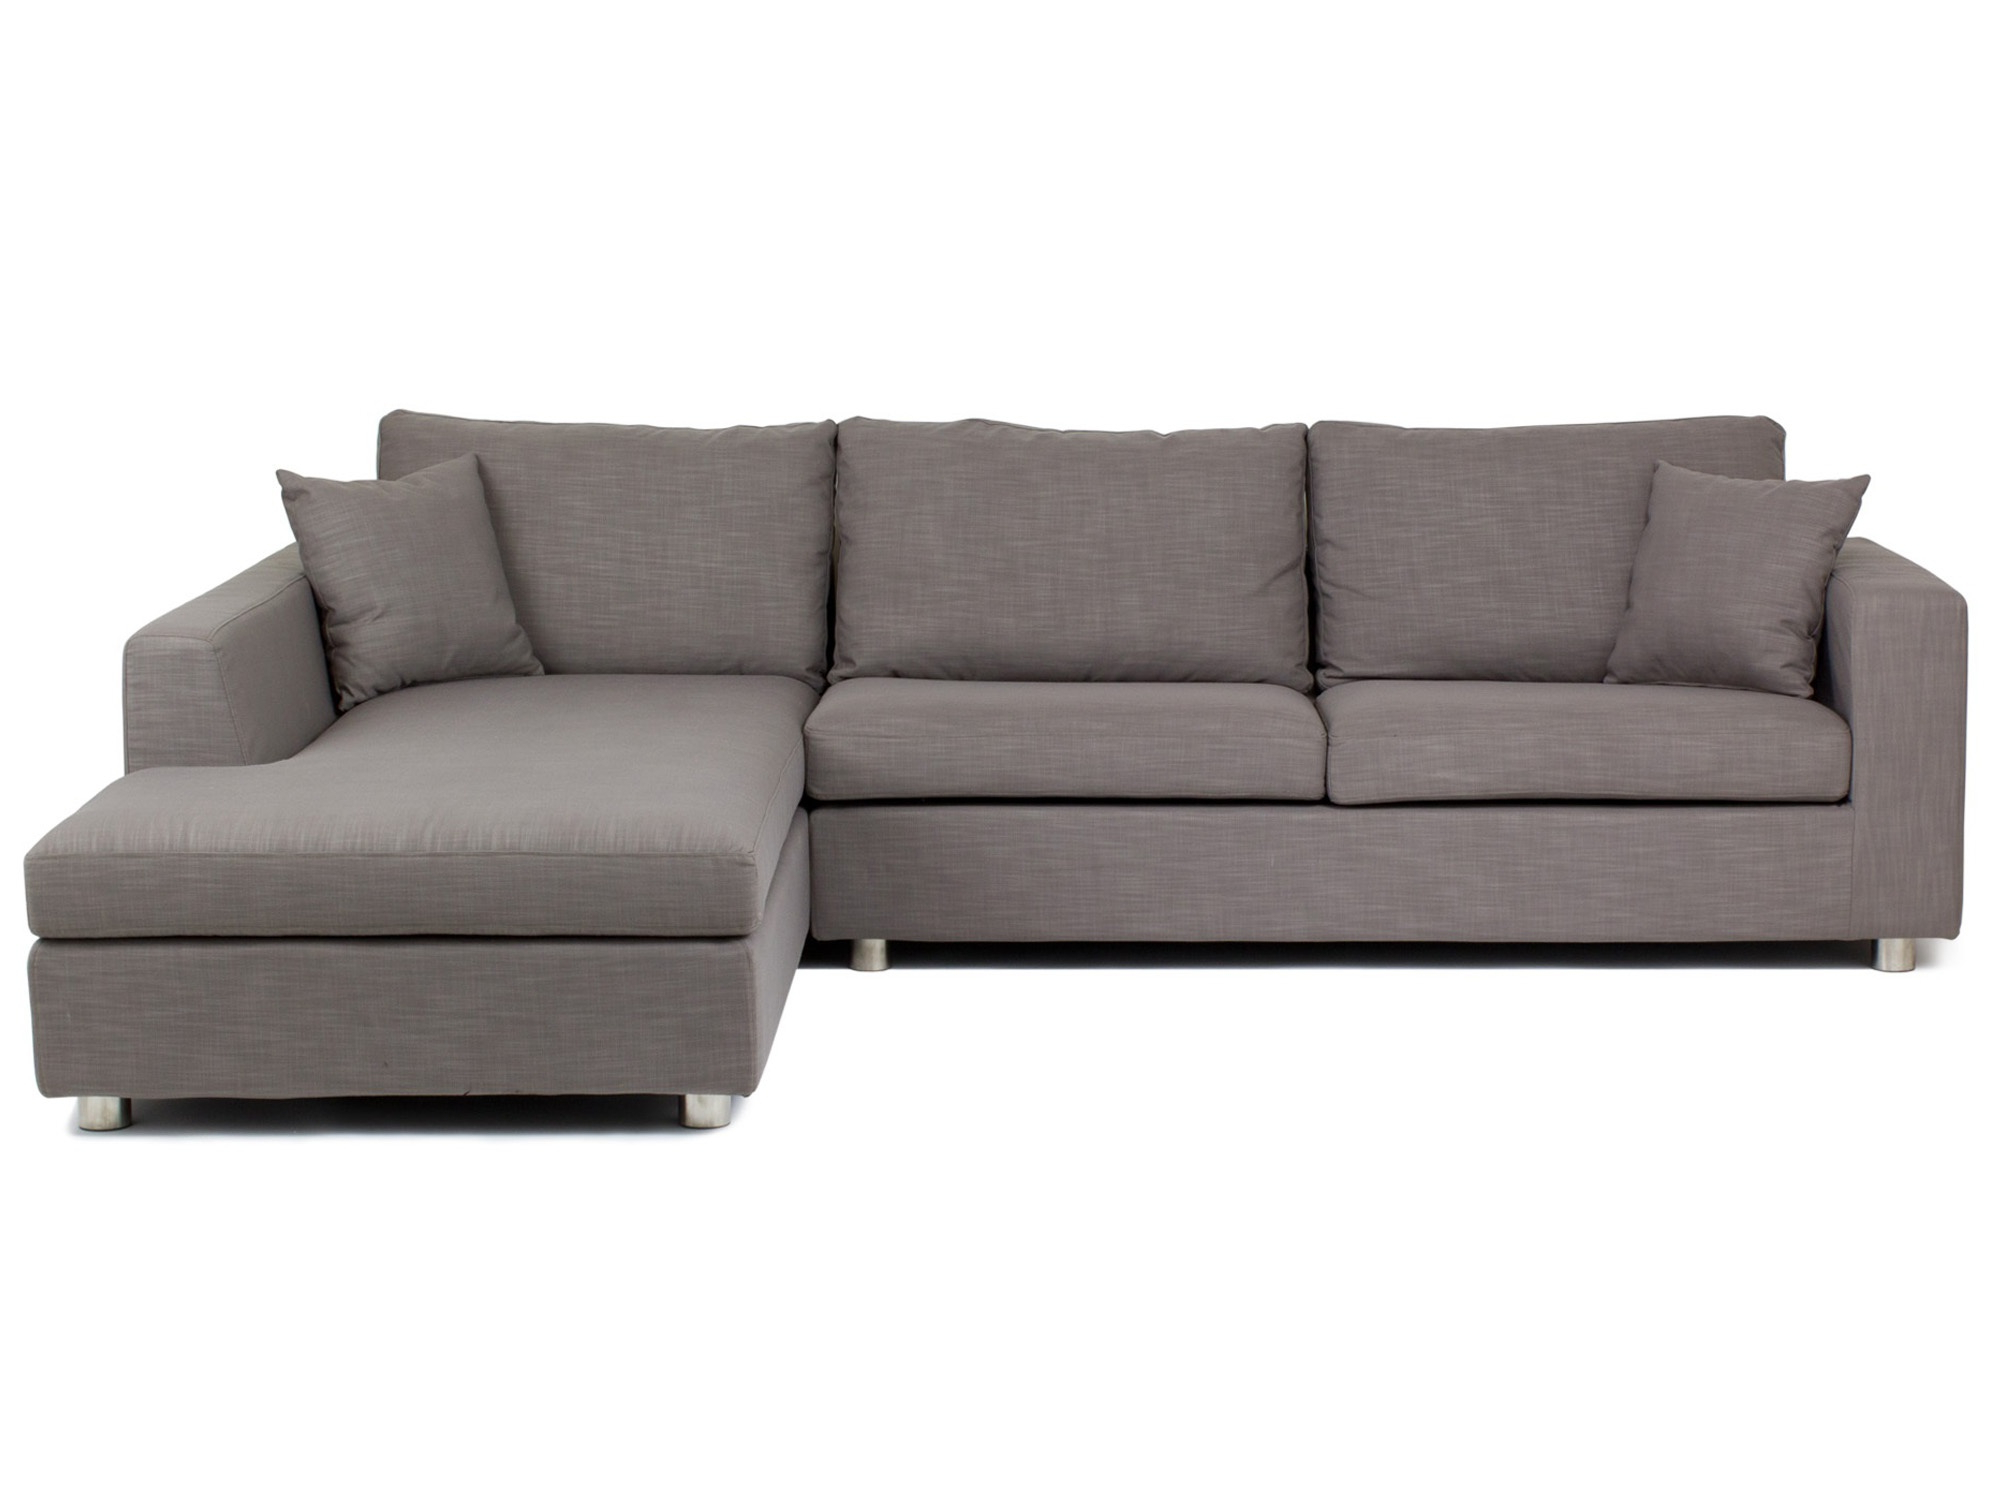 Sofa Sofa Bed With Storage Chaise Sectional Sofa Bed With Ideas In Well Liked Taren Reversible Sofa/chaise Sleeper Sectionals With Storage Ottoman (View 15 of 20)